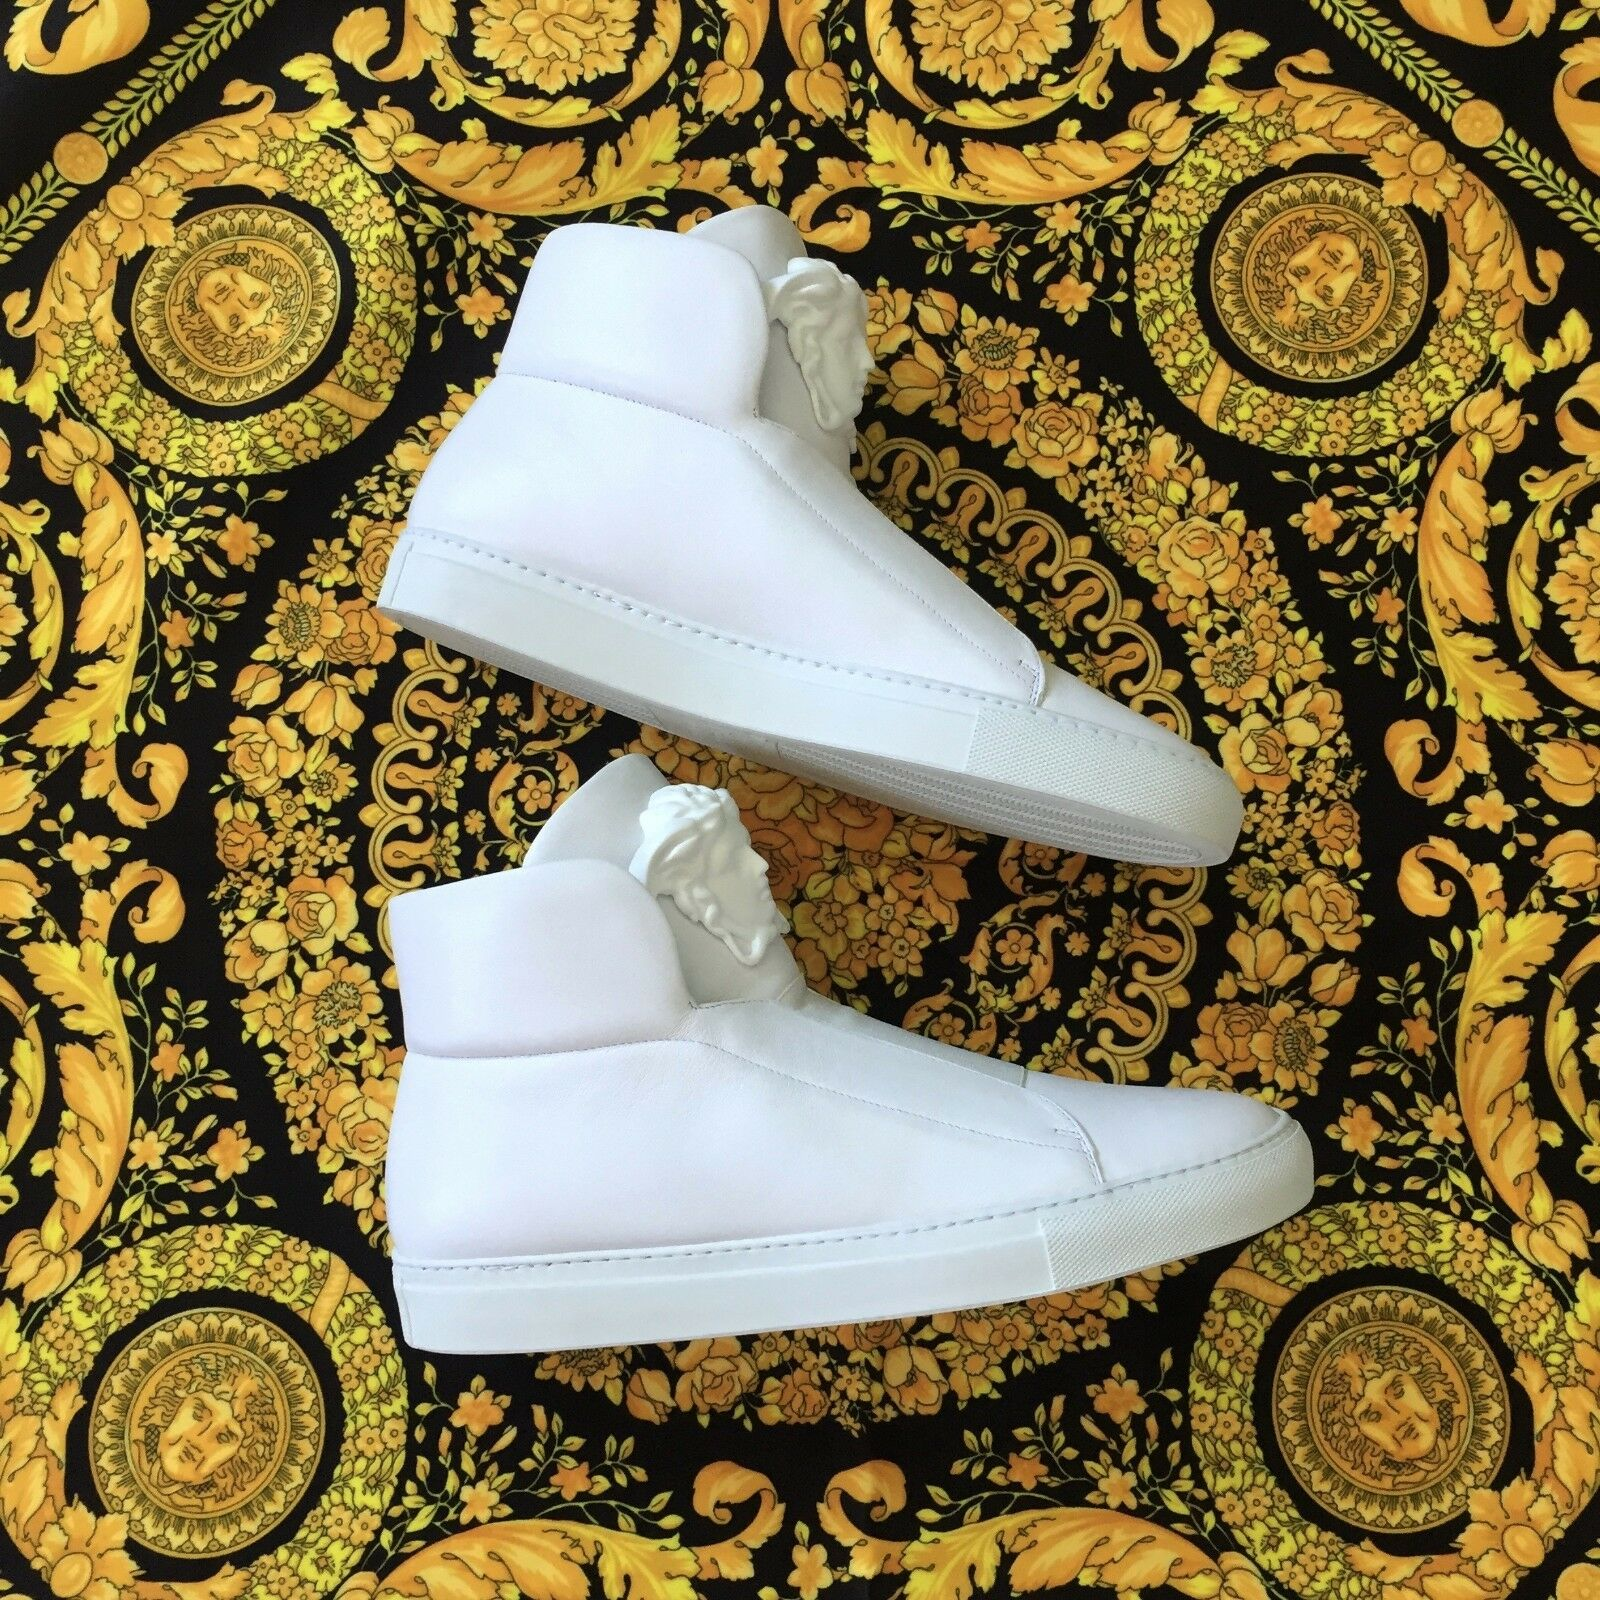 NWT DS Versace Palazzo Medusa Triple White High Top Leather Sneakers 8 AUTHENTIC